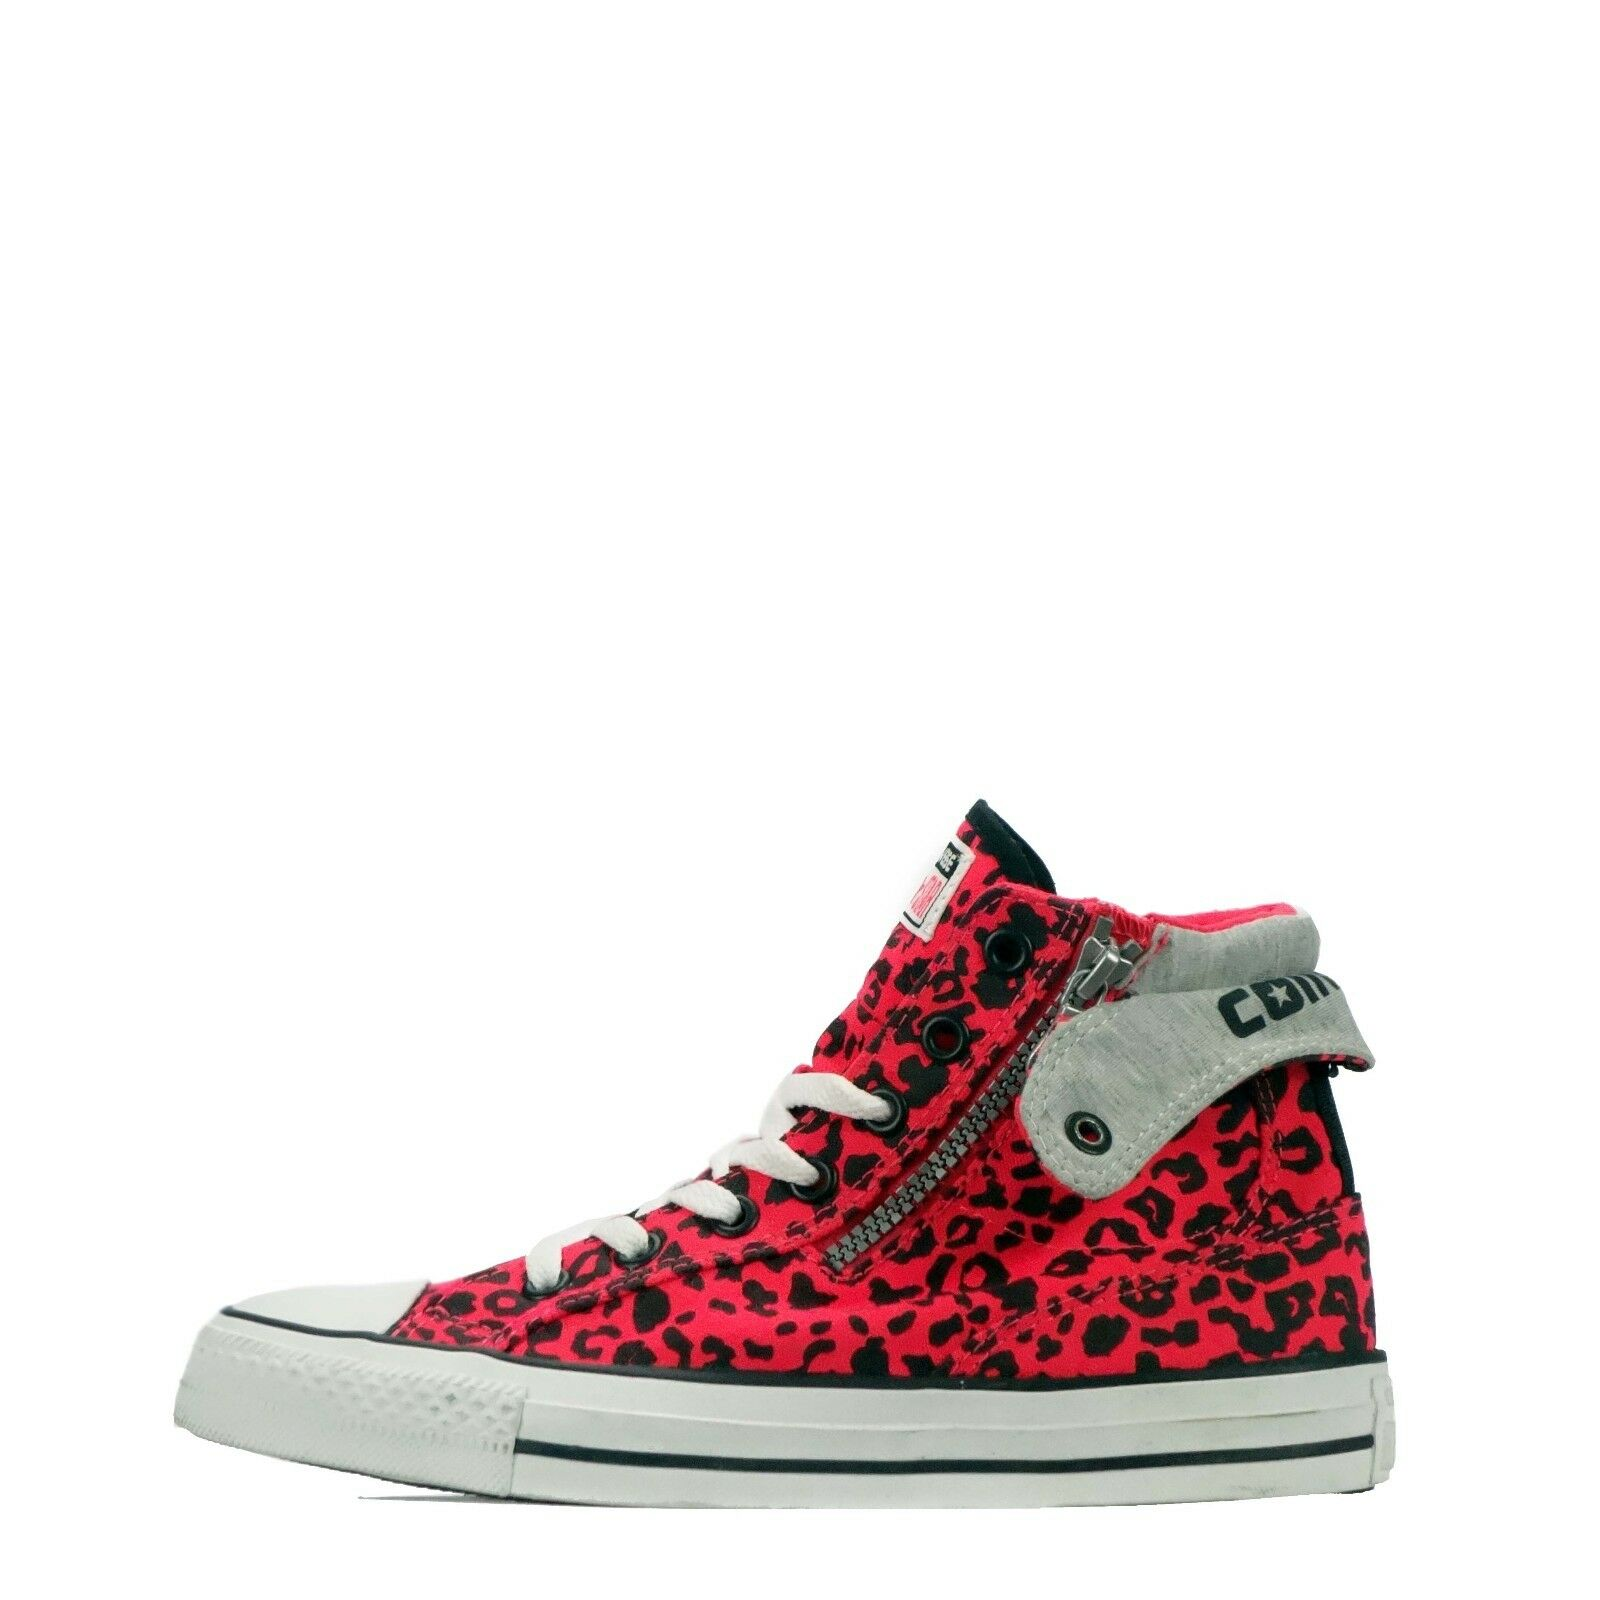 Converse Chuck Taylor PC Uptown Mid Women's Unisex Shoes Trainers in Pink